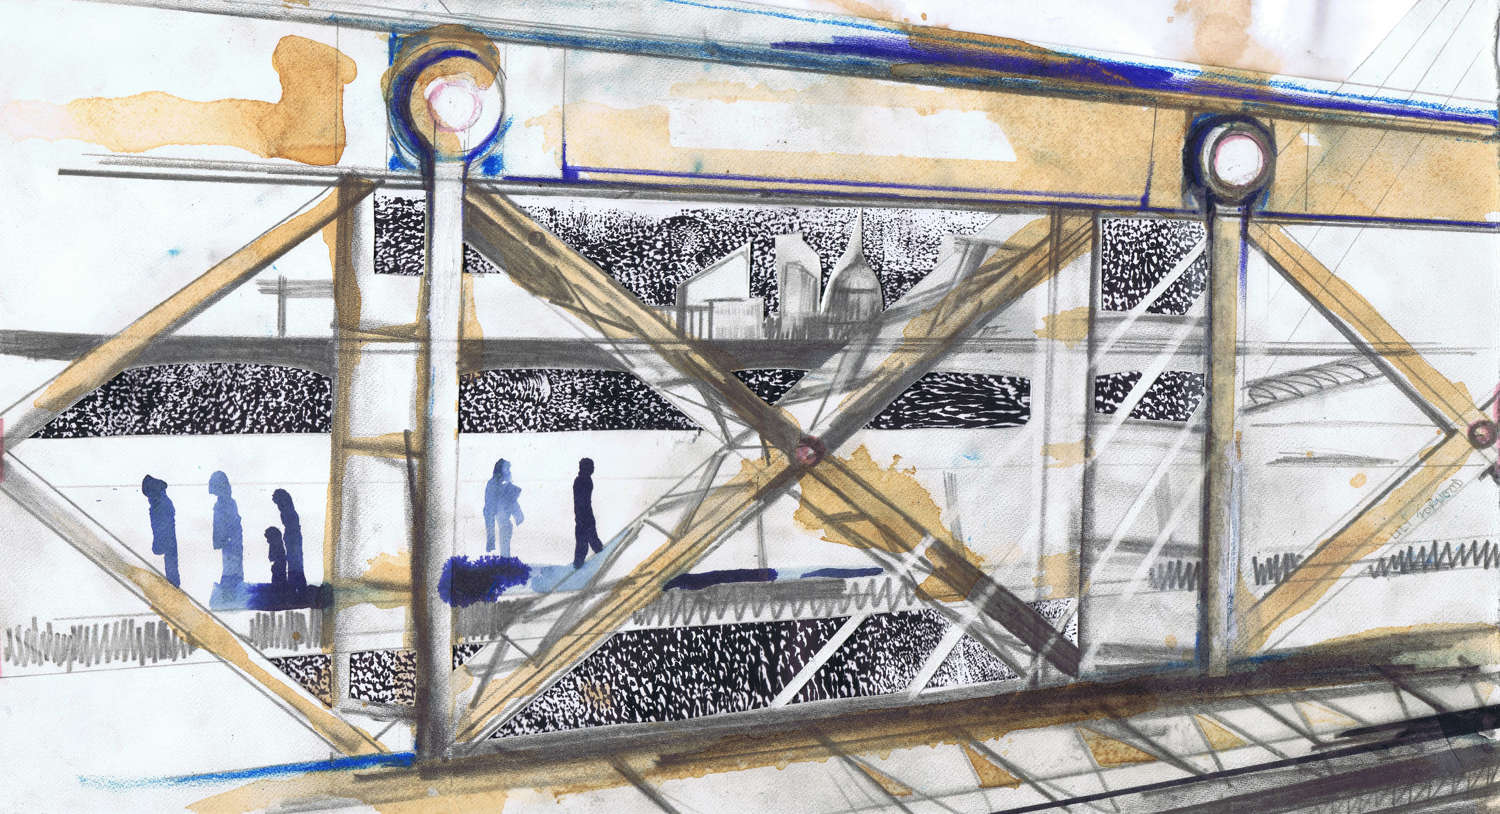 On the Hungerford Bridge to Charing Cross, Sketch